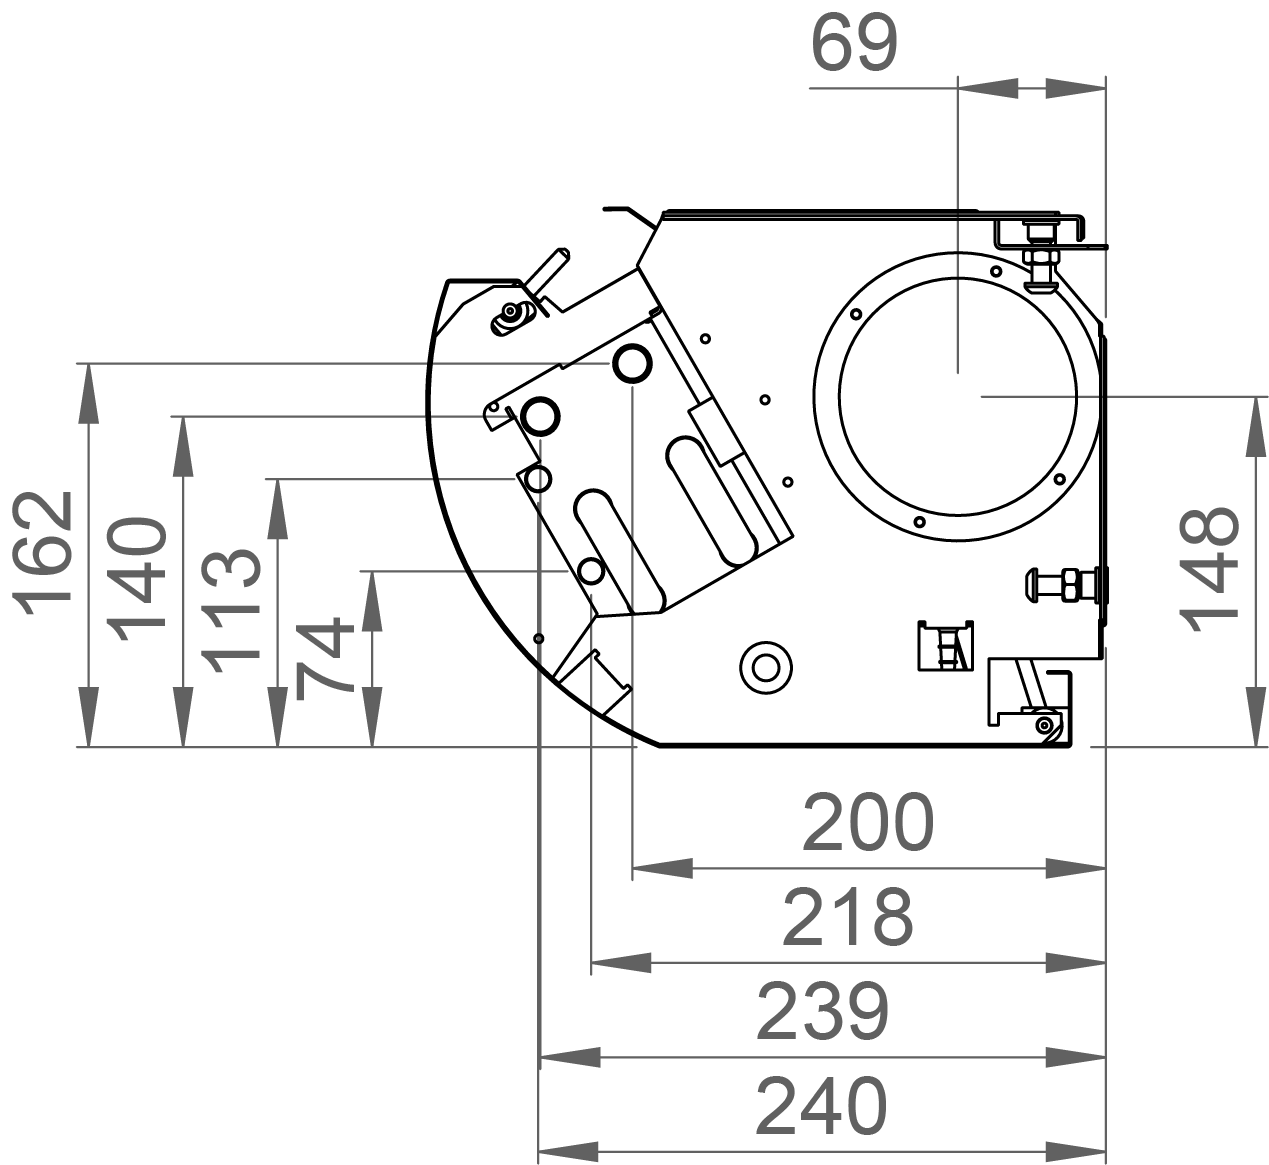 Dimensions of the Halton CaBeam Chilled Beam for Exposed Installation